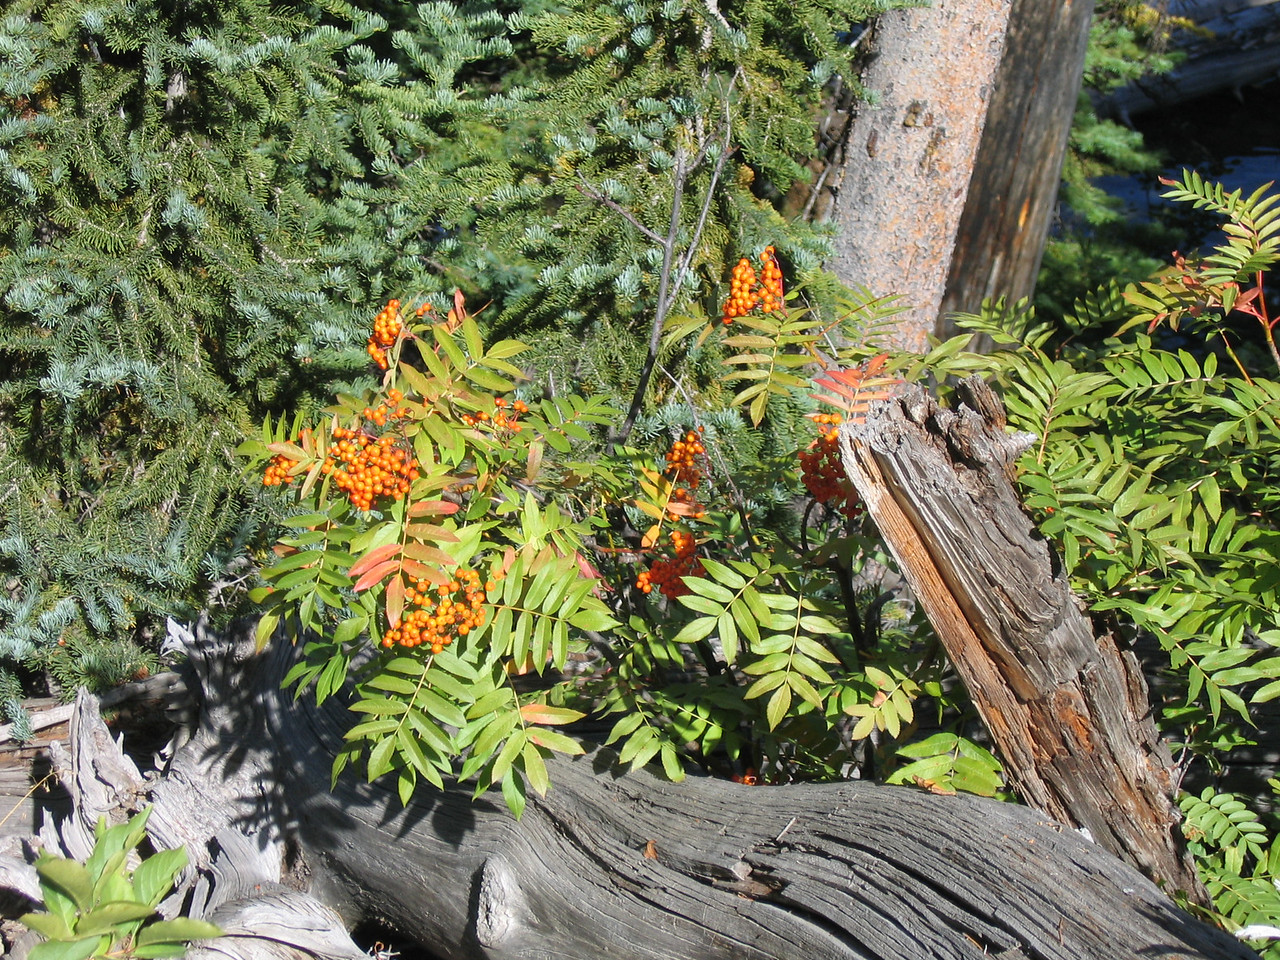 As we were hiking on the trail, these orange berries catch my eye.  The color of the berries, along with the arrangement of deadfall make an intereseting composition.